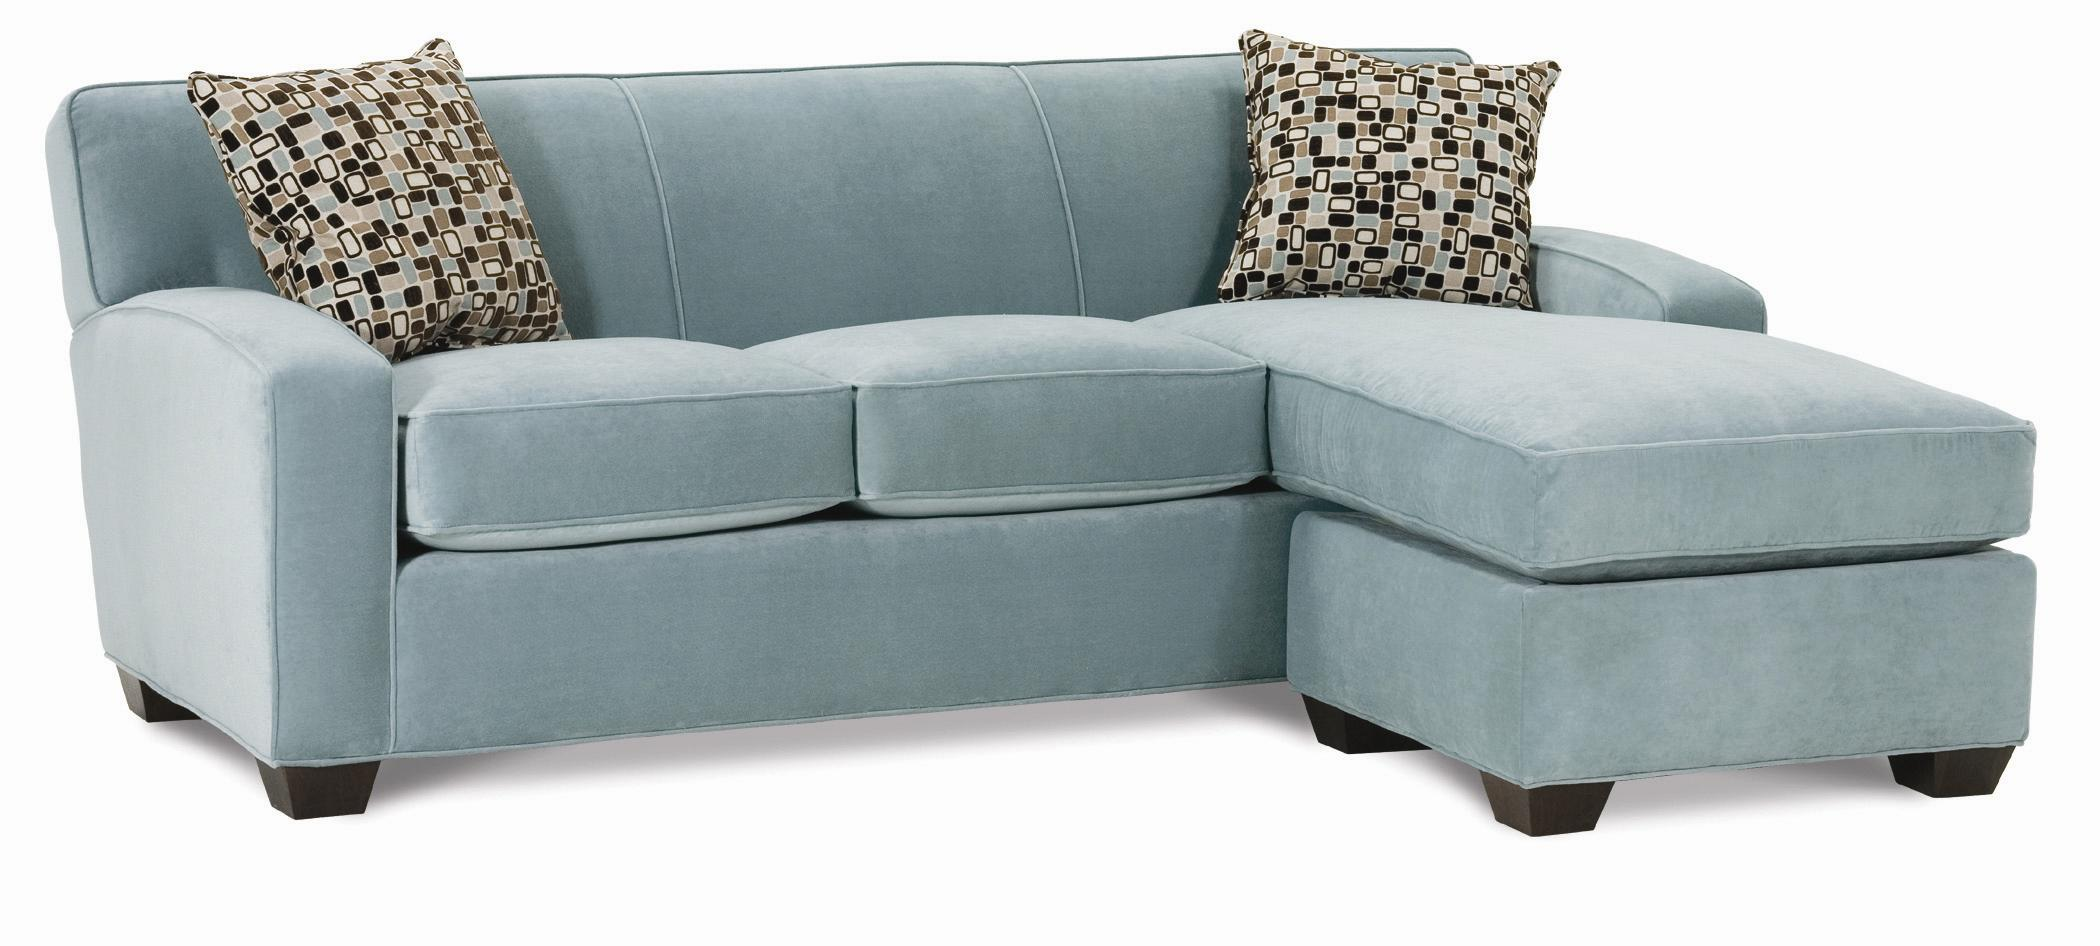 Inspirational sofa sectionals made in usa sectional sofas for Sectional sofas made in usa